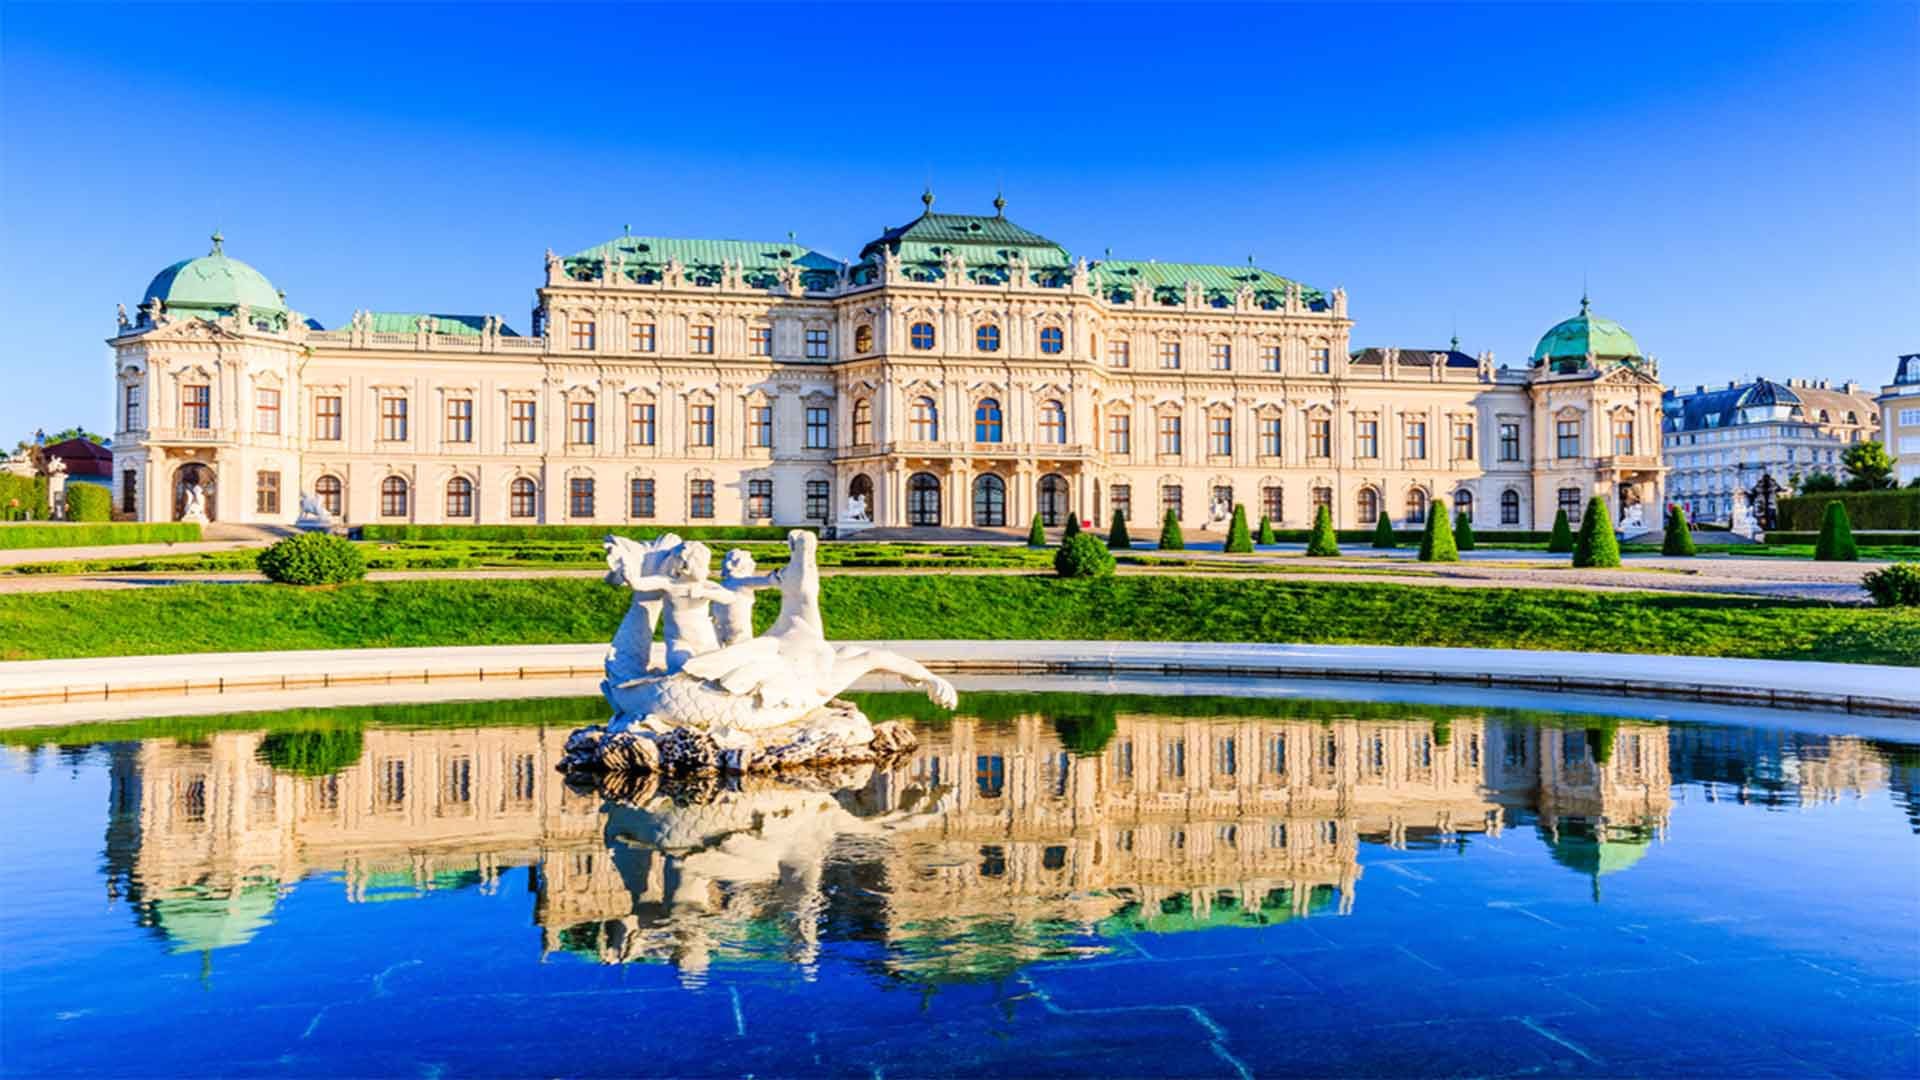 The Complete Vienna Vacation Travel Guide Zen Tripstar Vienna Austria. Upper Belvedere Palace with reflection in the water fountain.